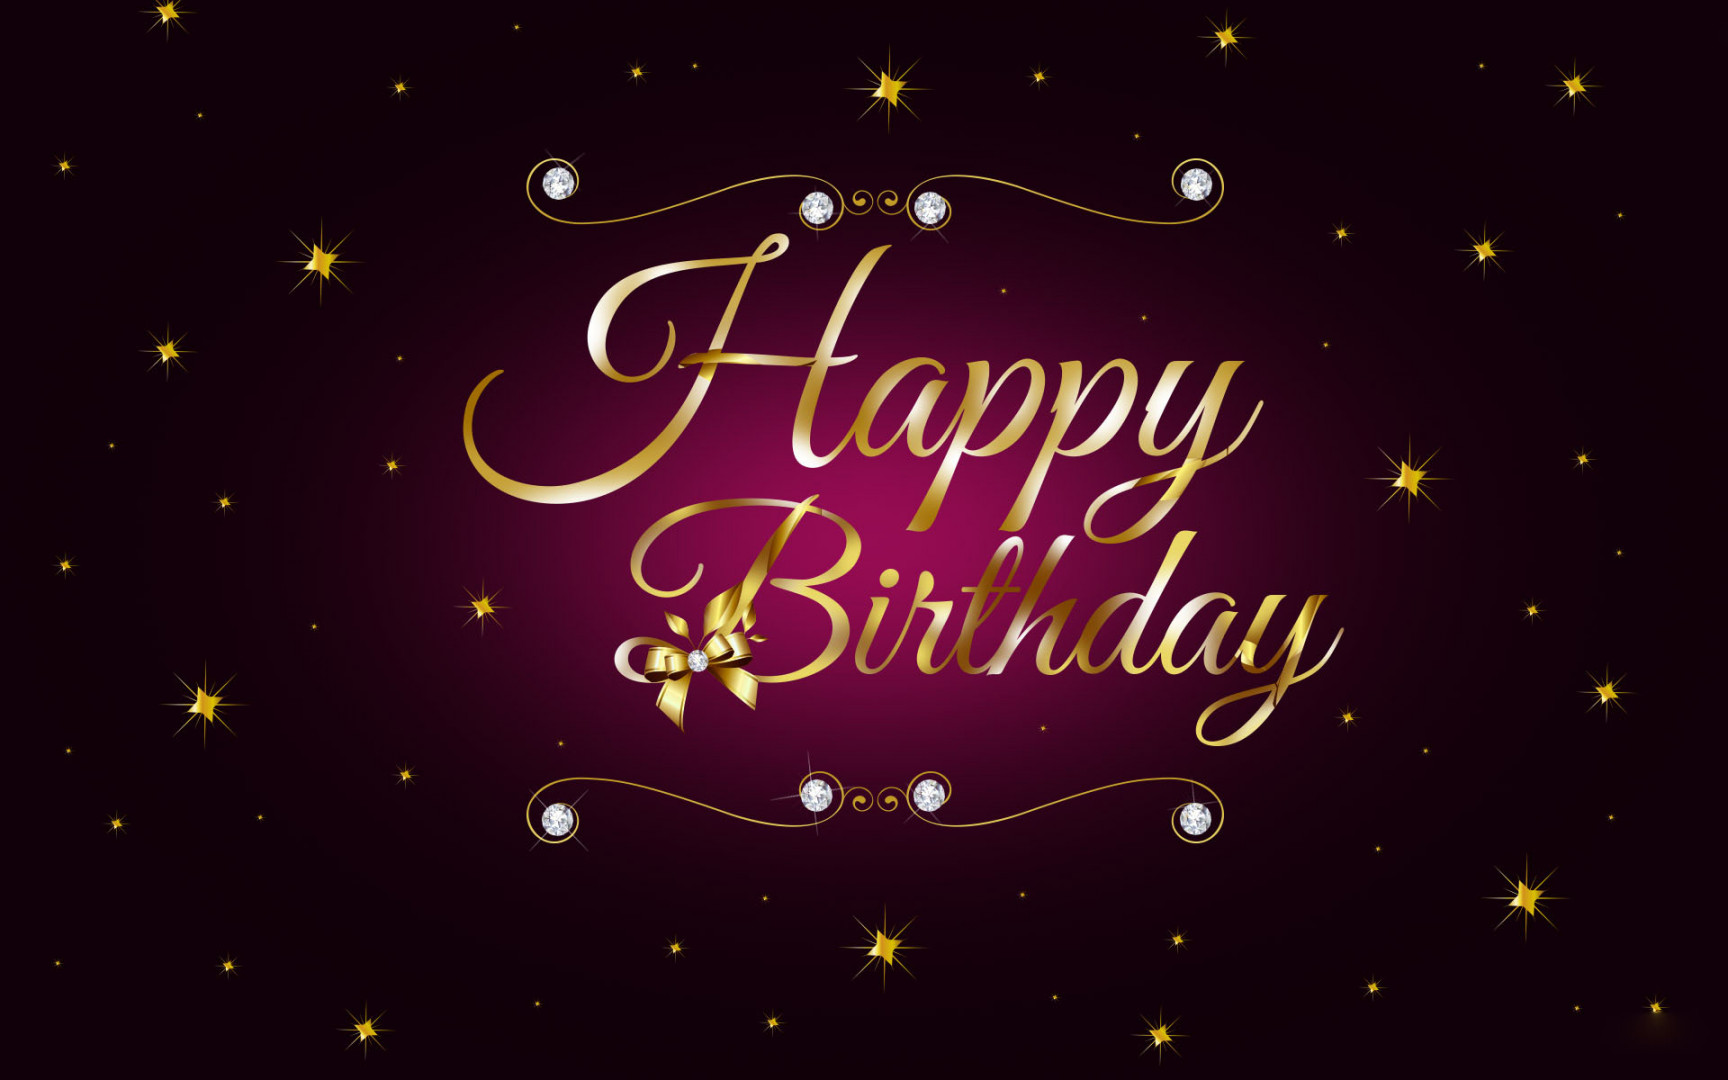 birthday wishes wallpapers free download ; elegant-hd-font-art-happy-birthday-wallpaper-free-happy-birthday-of-happy-birthday-hd-images-free-download